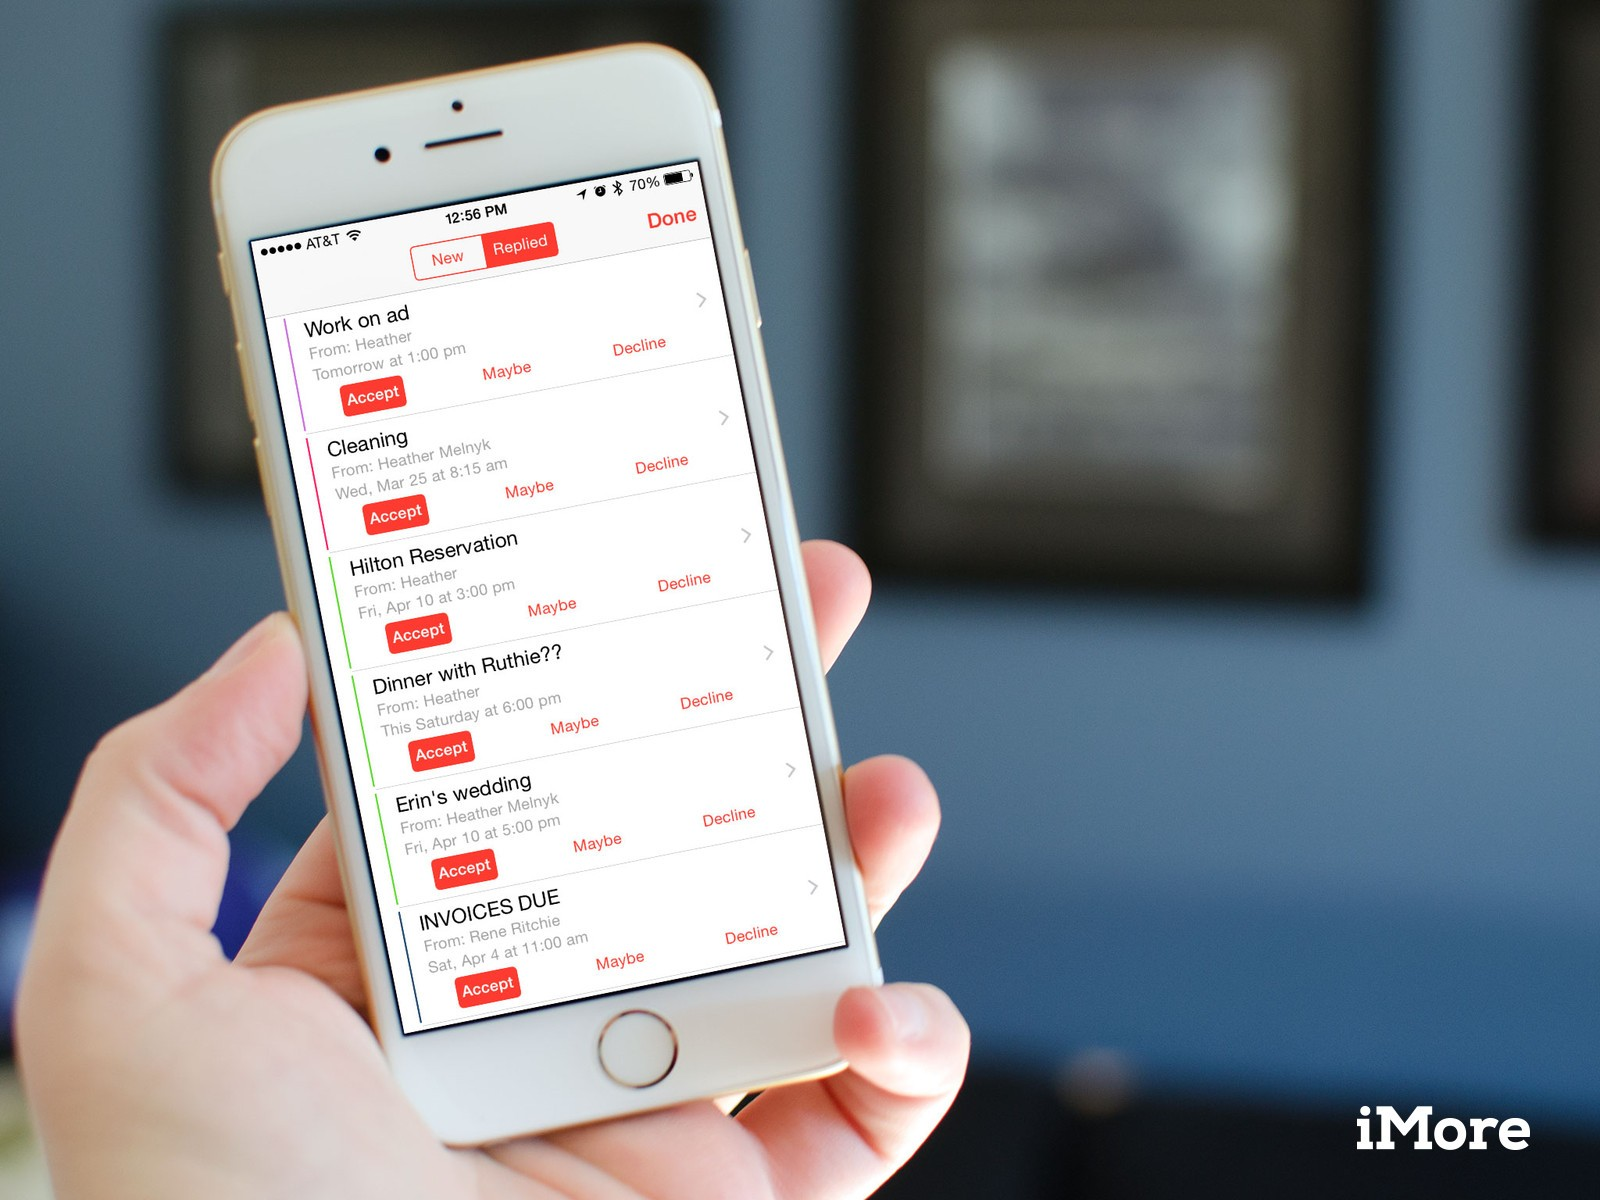 How to view, manage, and change replies to shared Calendar events on iPhone and iPad